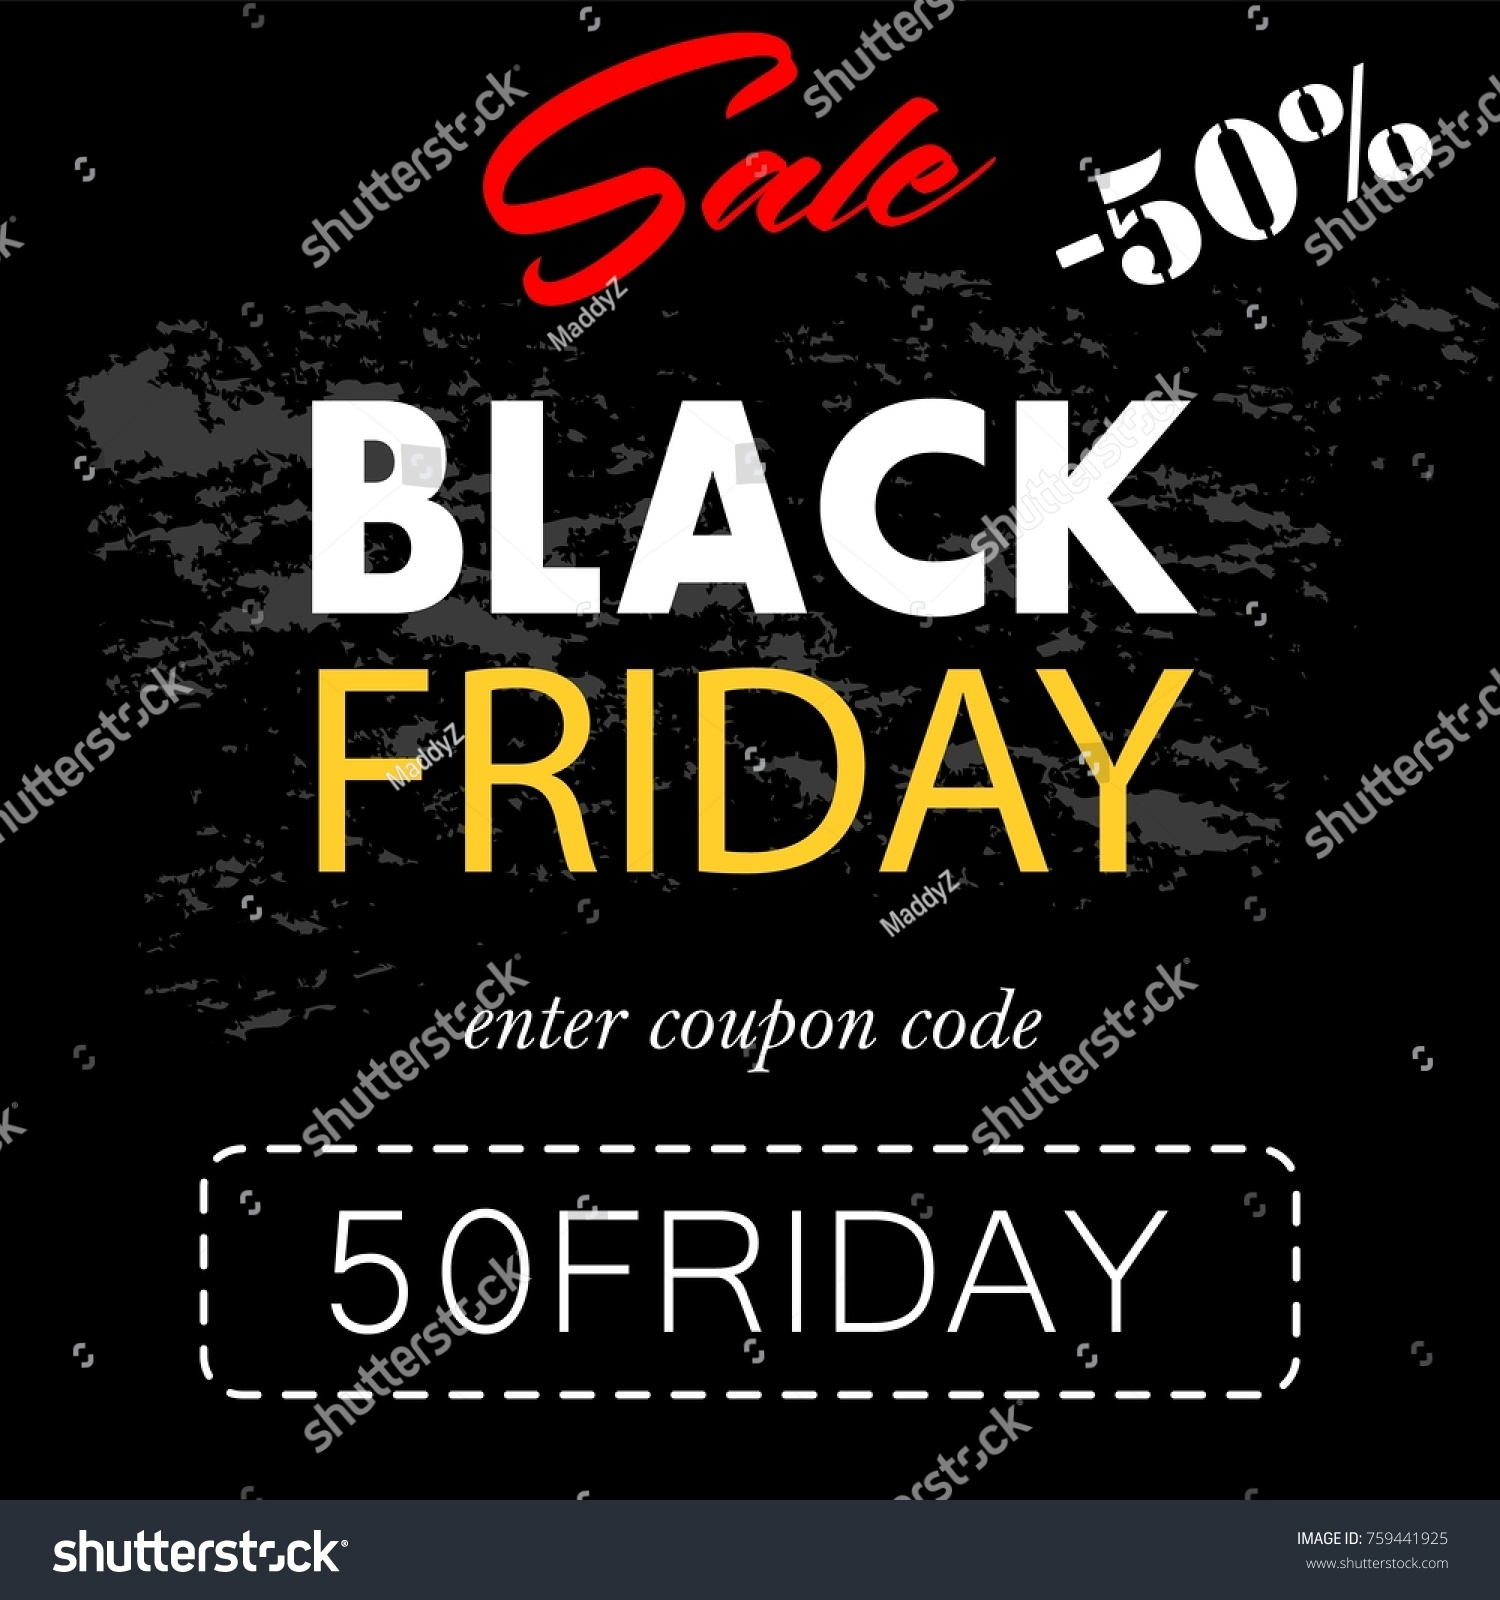 Black Friday Coupon Code Banner Flyer Stock Vector Royalty Free 759441925